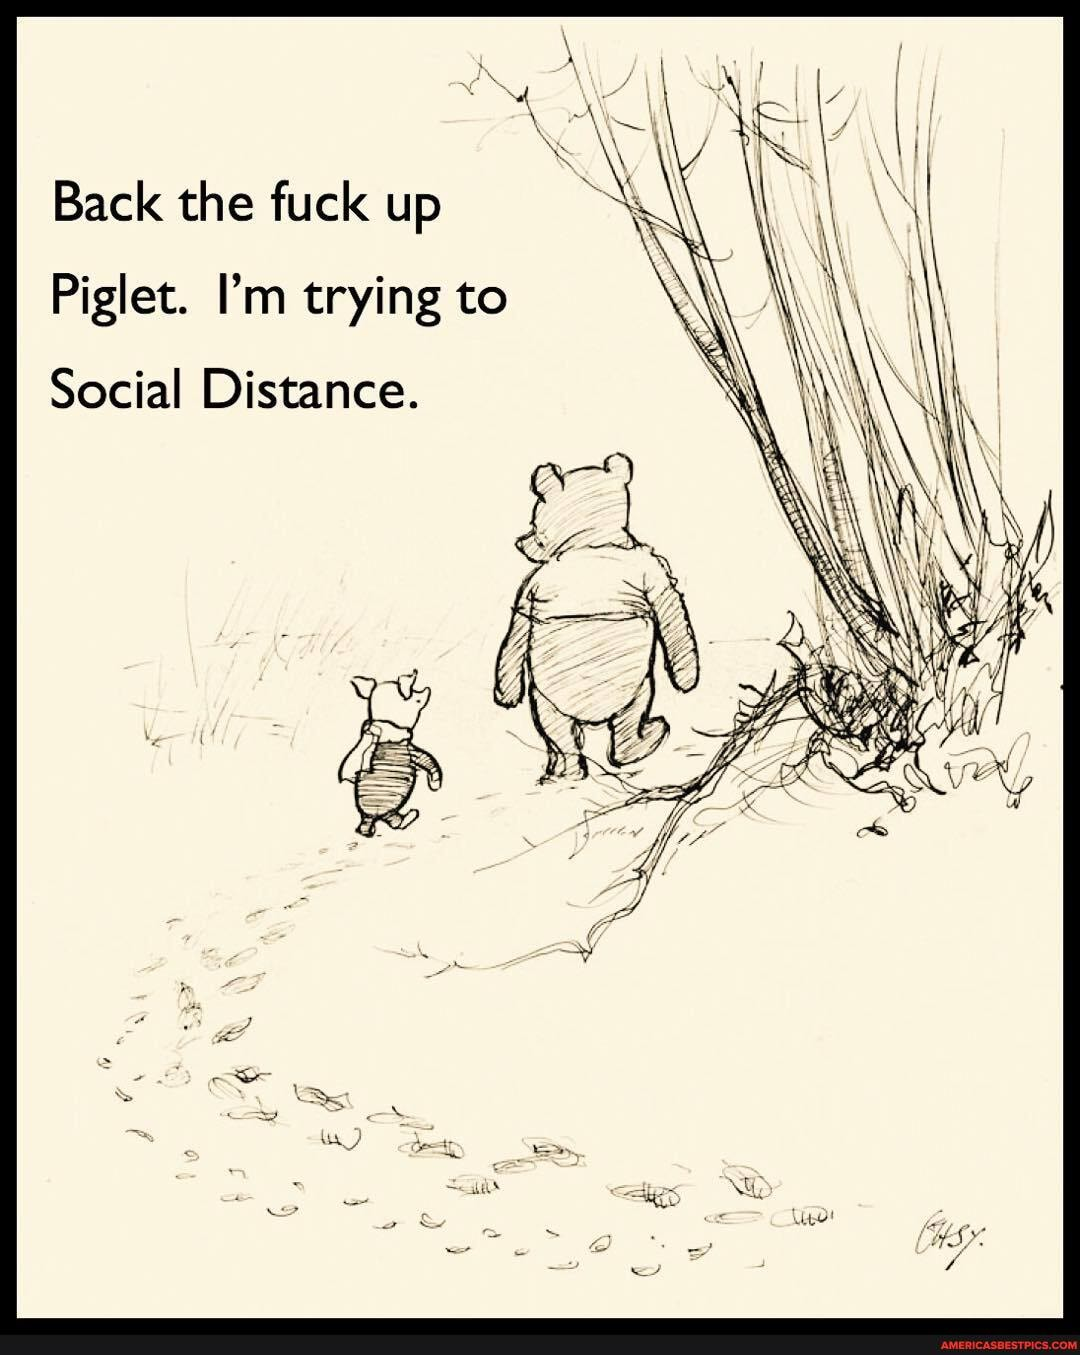 Back the fuck up Piglet. I'm trying to Social Distance.